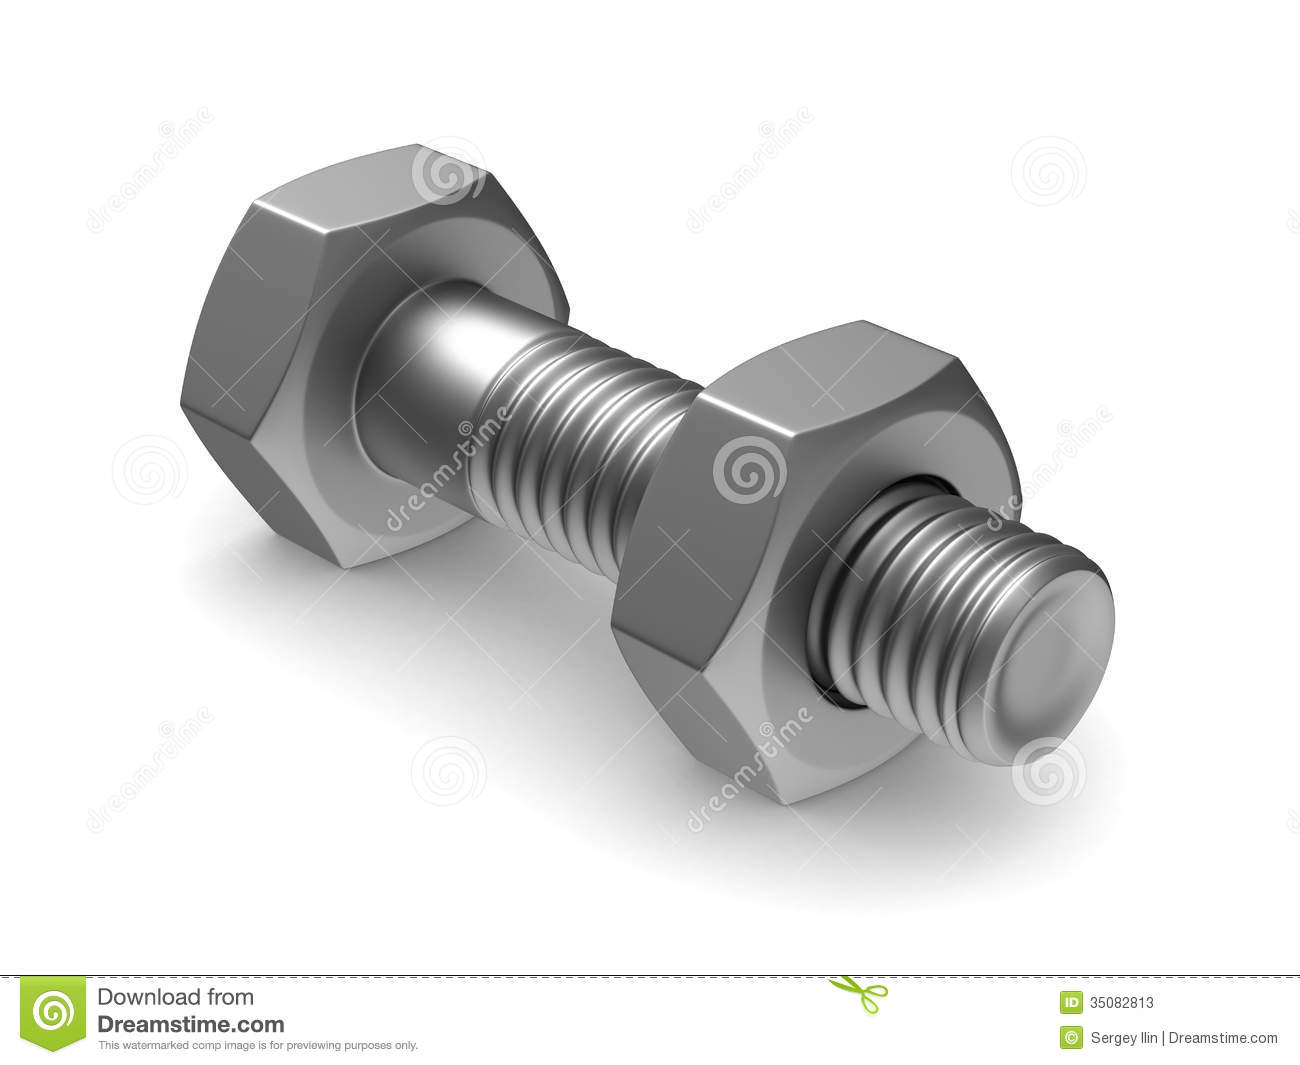 how to start a bolt and nut business